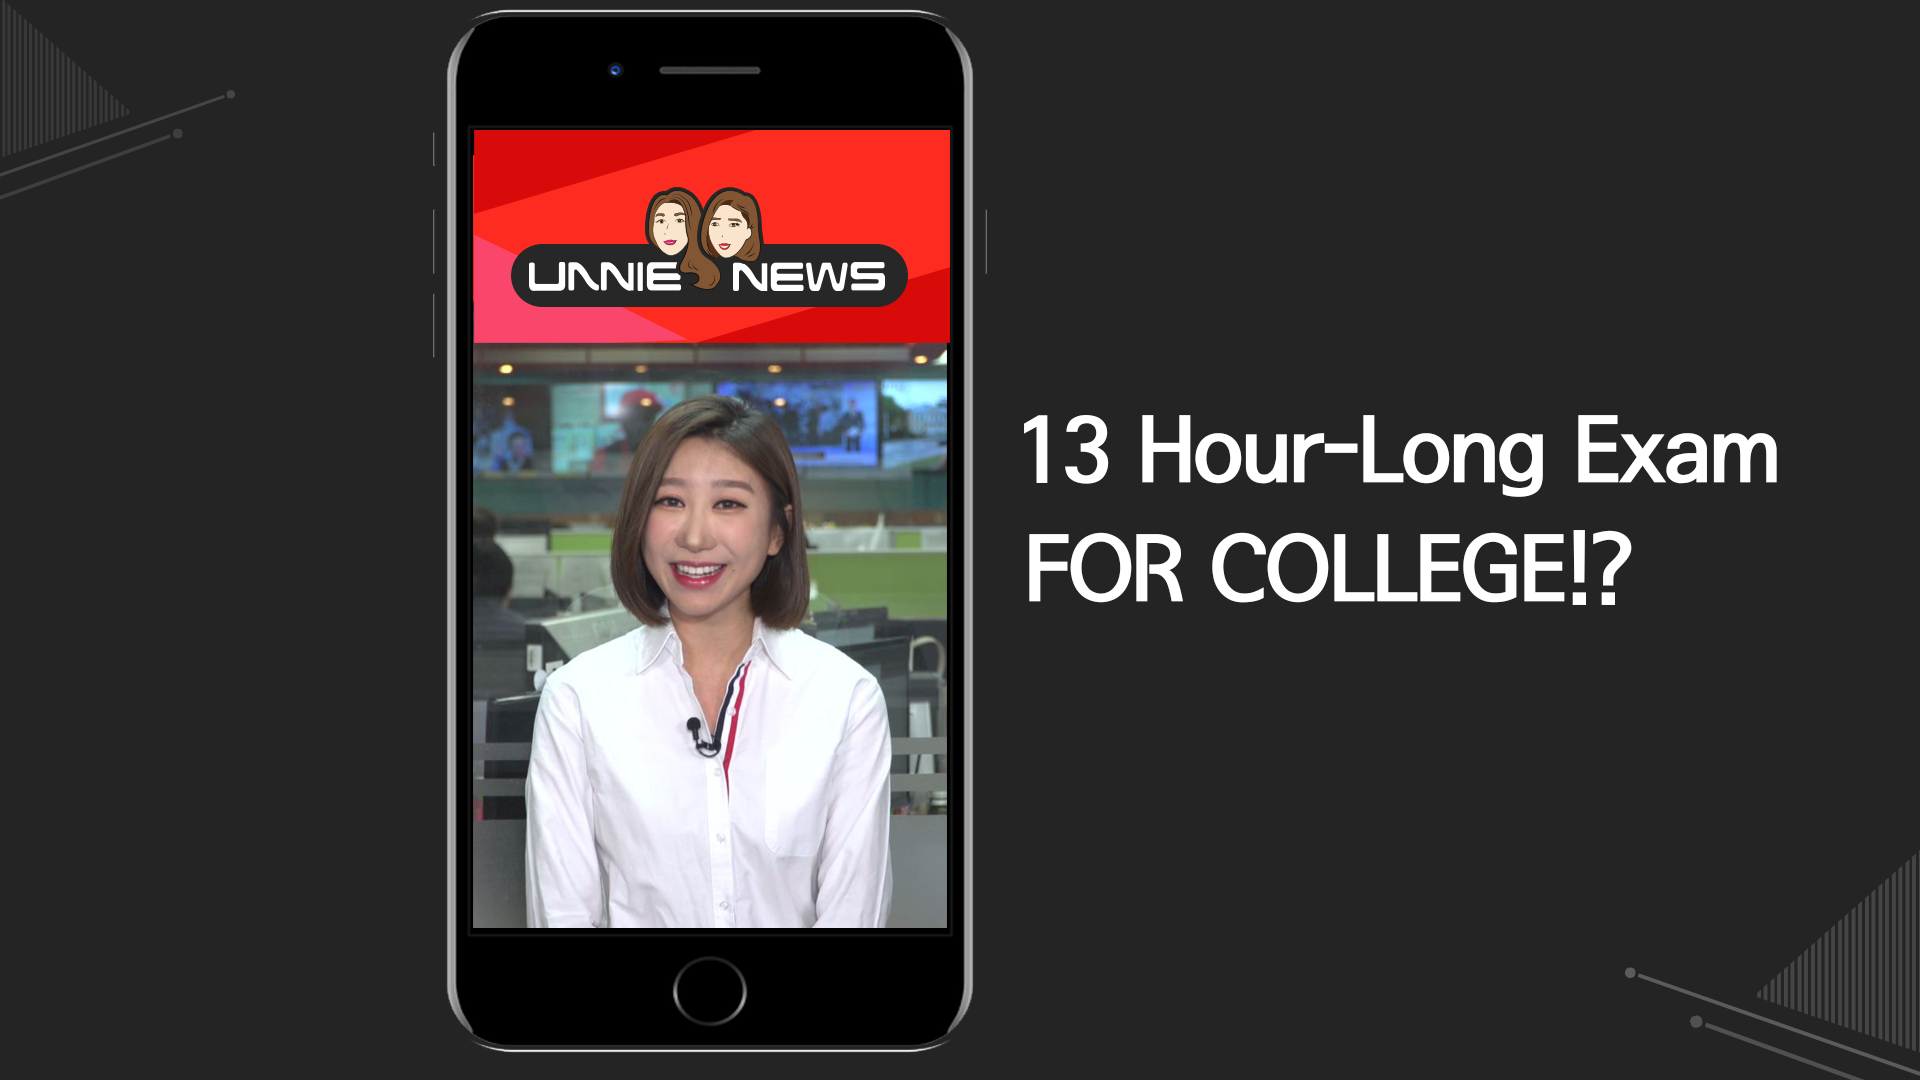 [UNNIE NEWS] 13 Hour-Long Exam for College!?